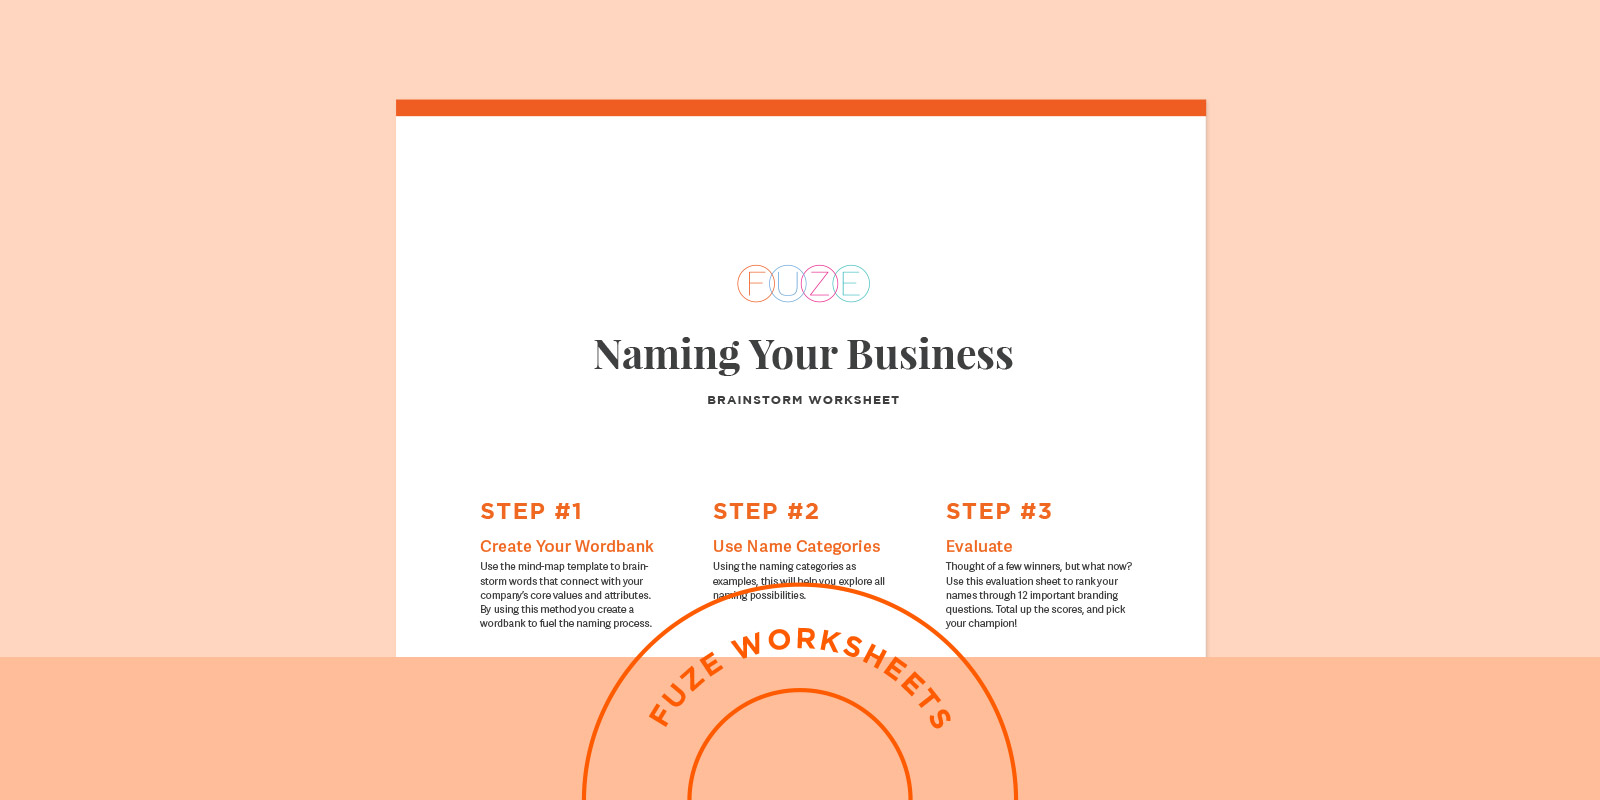 Naming Your Business free brainstorm worksheet